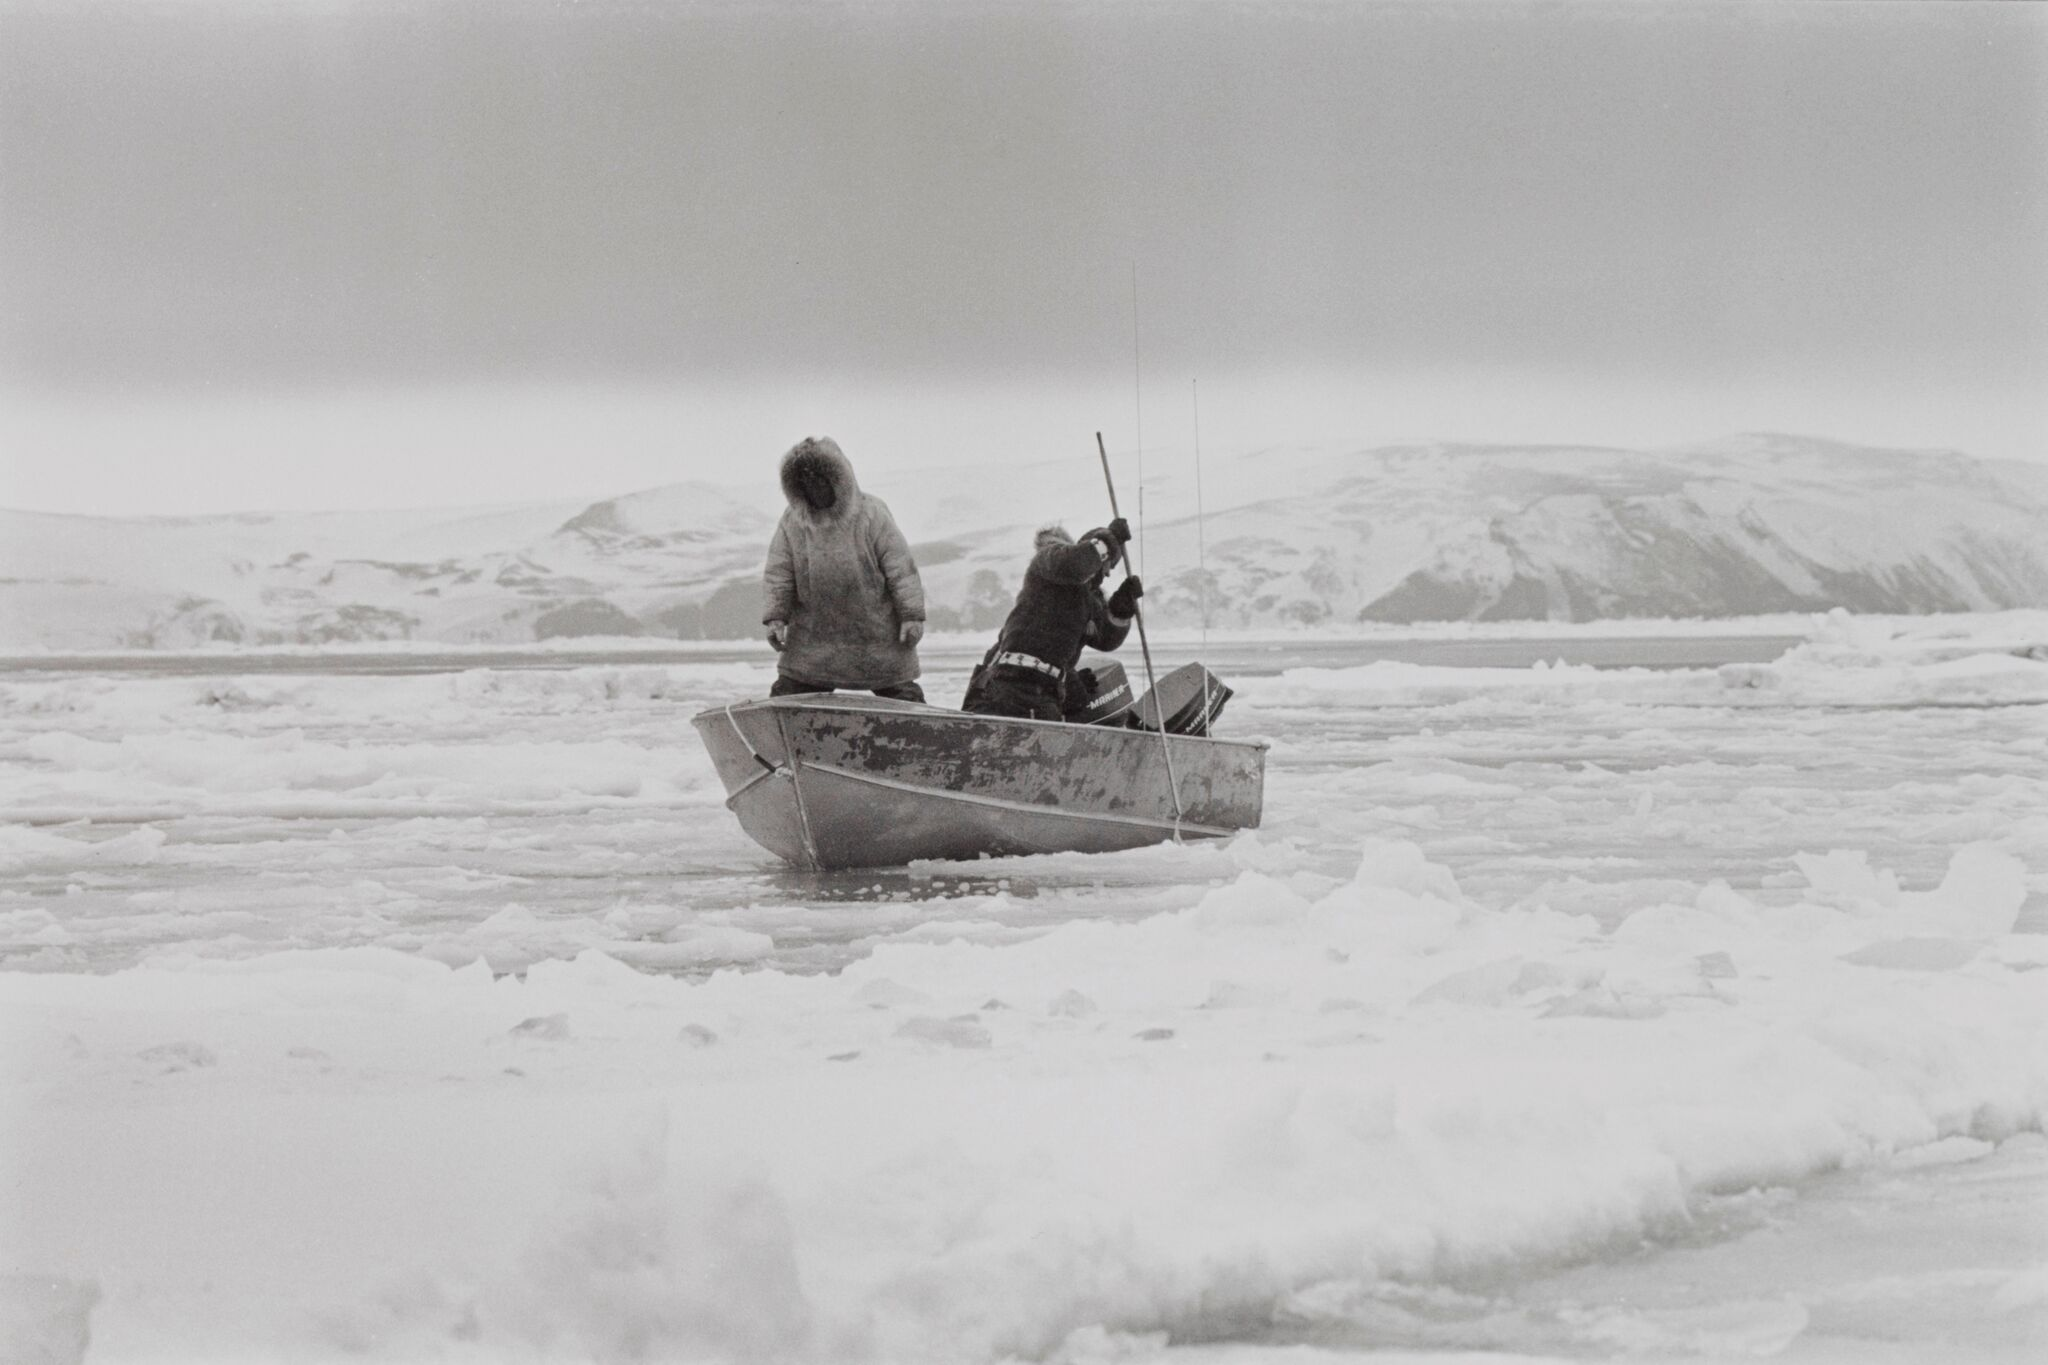 two people in boat spear fishing in icy water